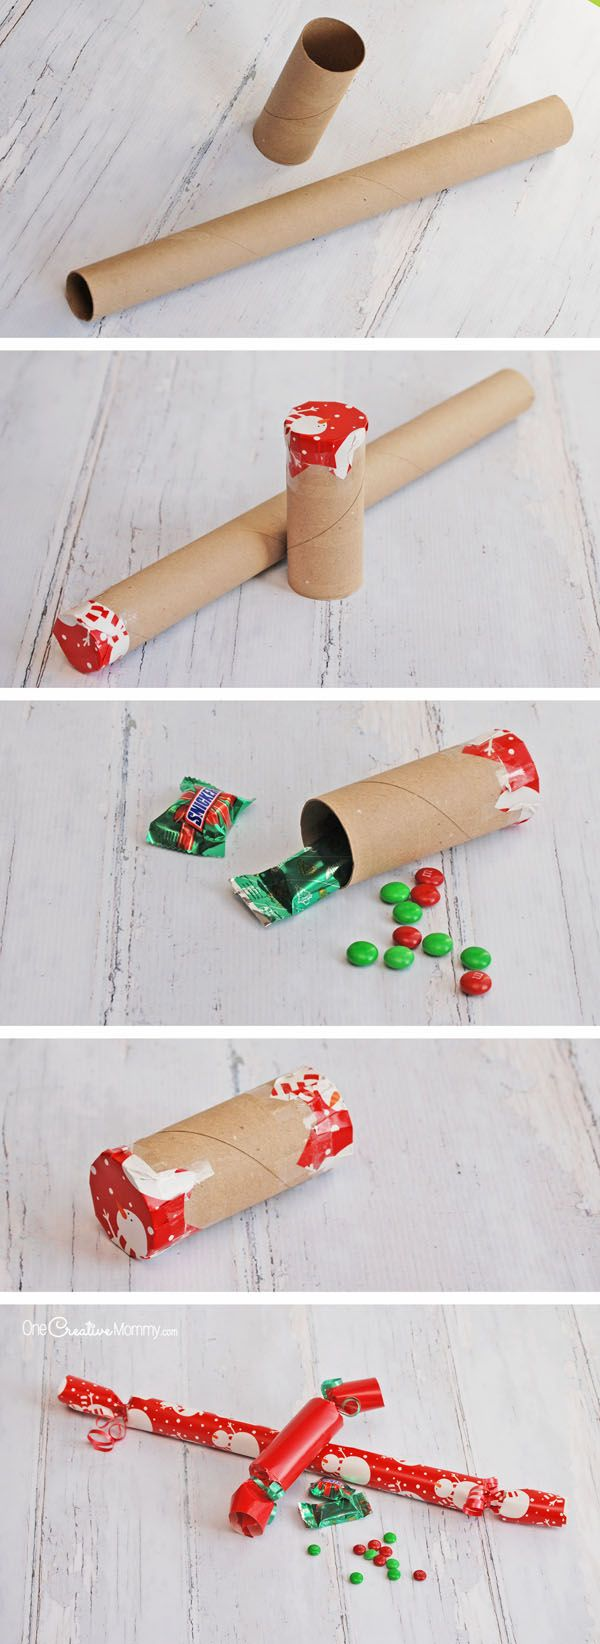 Christmas Crackers Stocking Stuffers - onecreativemommy.com